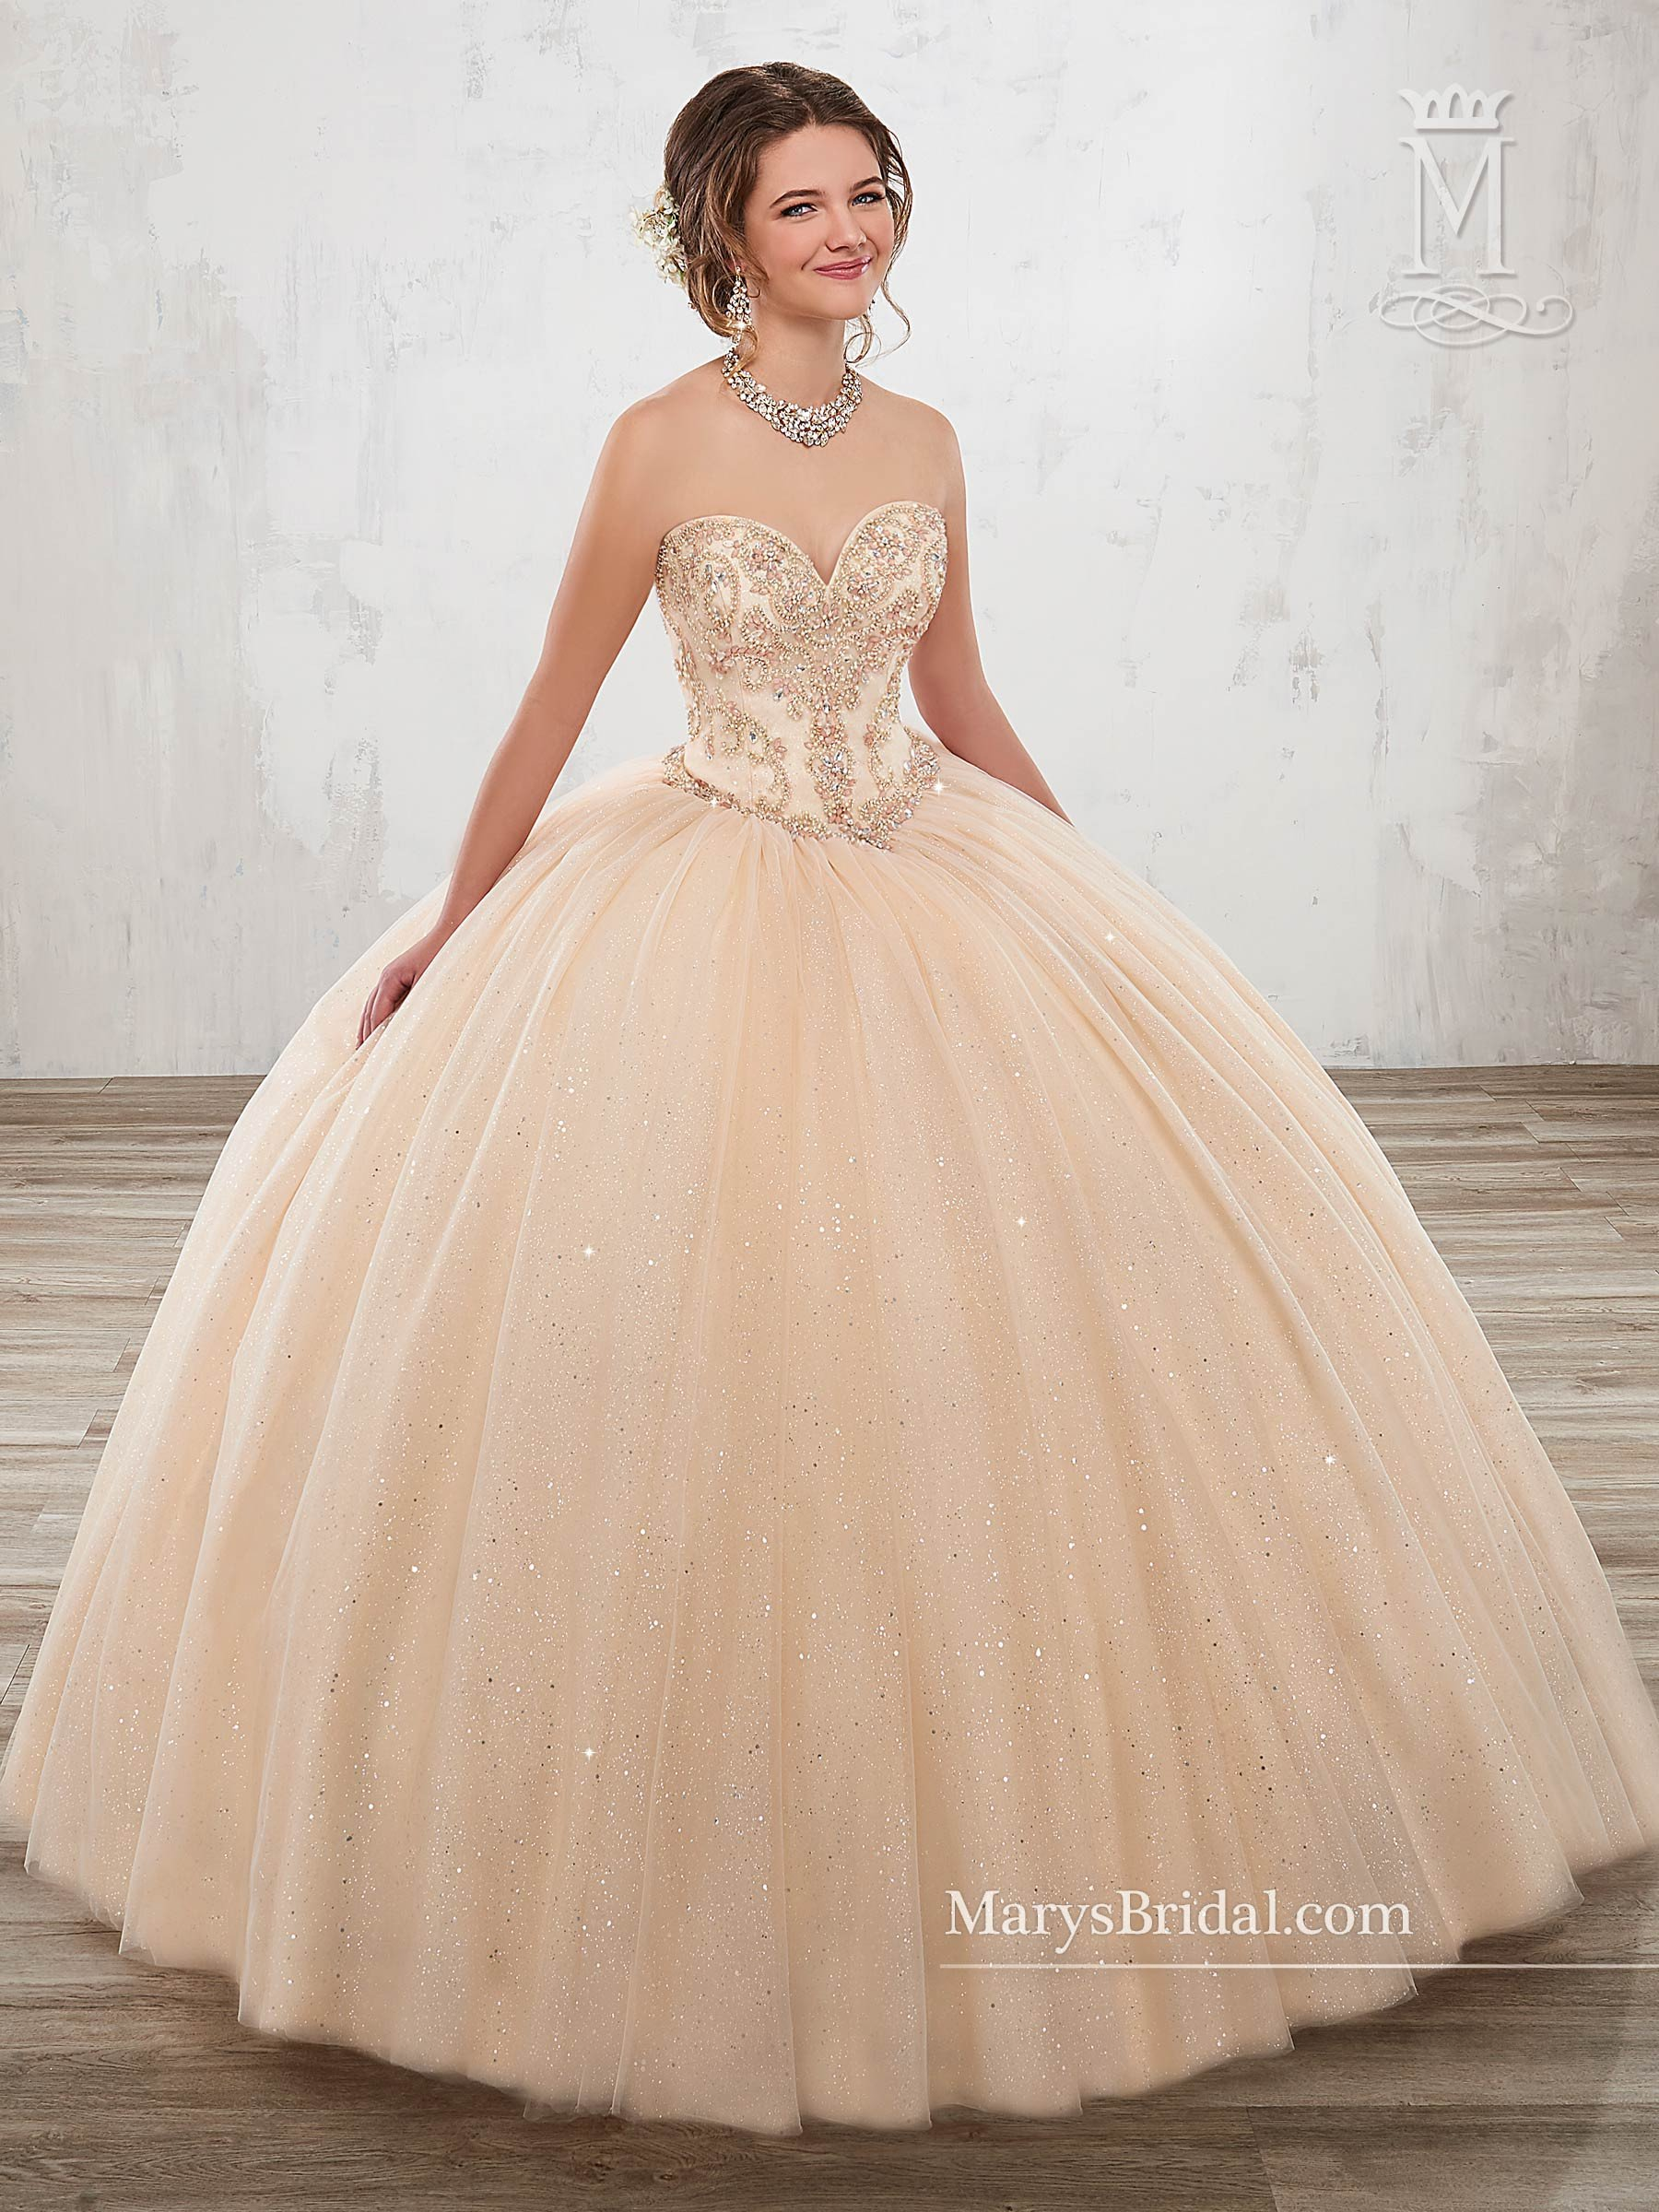 Strapless A-line Quinceanera Dress by Mary s Bridal Beloving 4806 in ... 0fc1a6796fb3